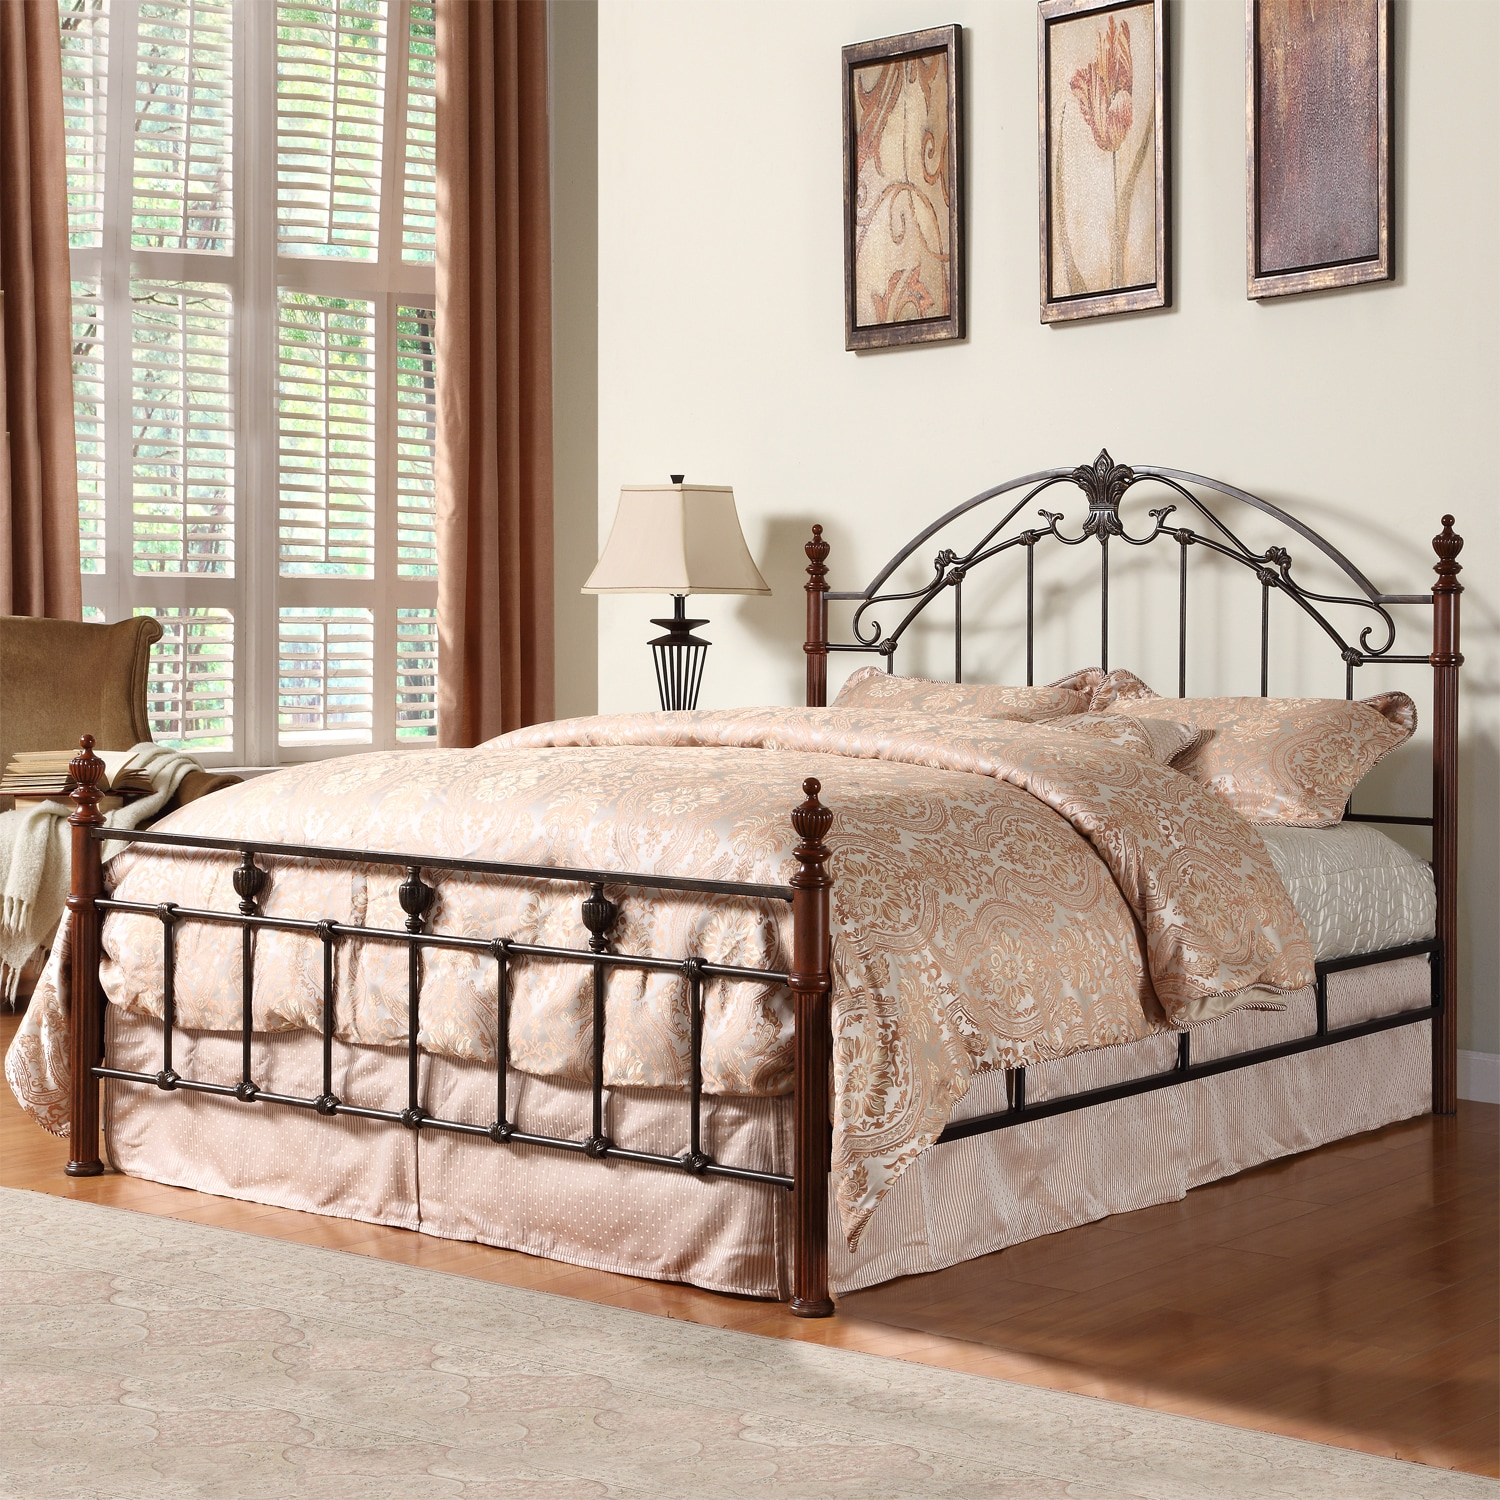 Scroll Bronze Iron Poster Wood King Size Bed Modern